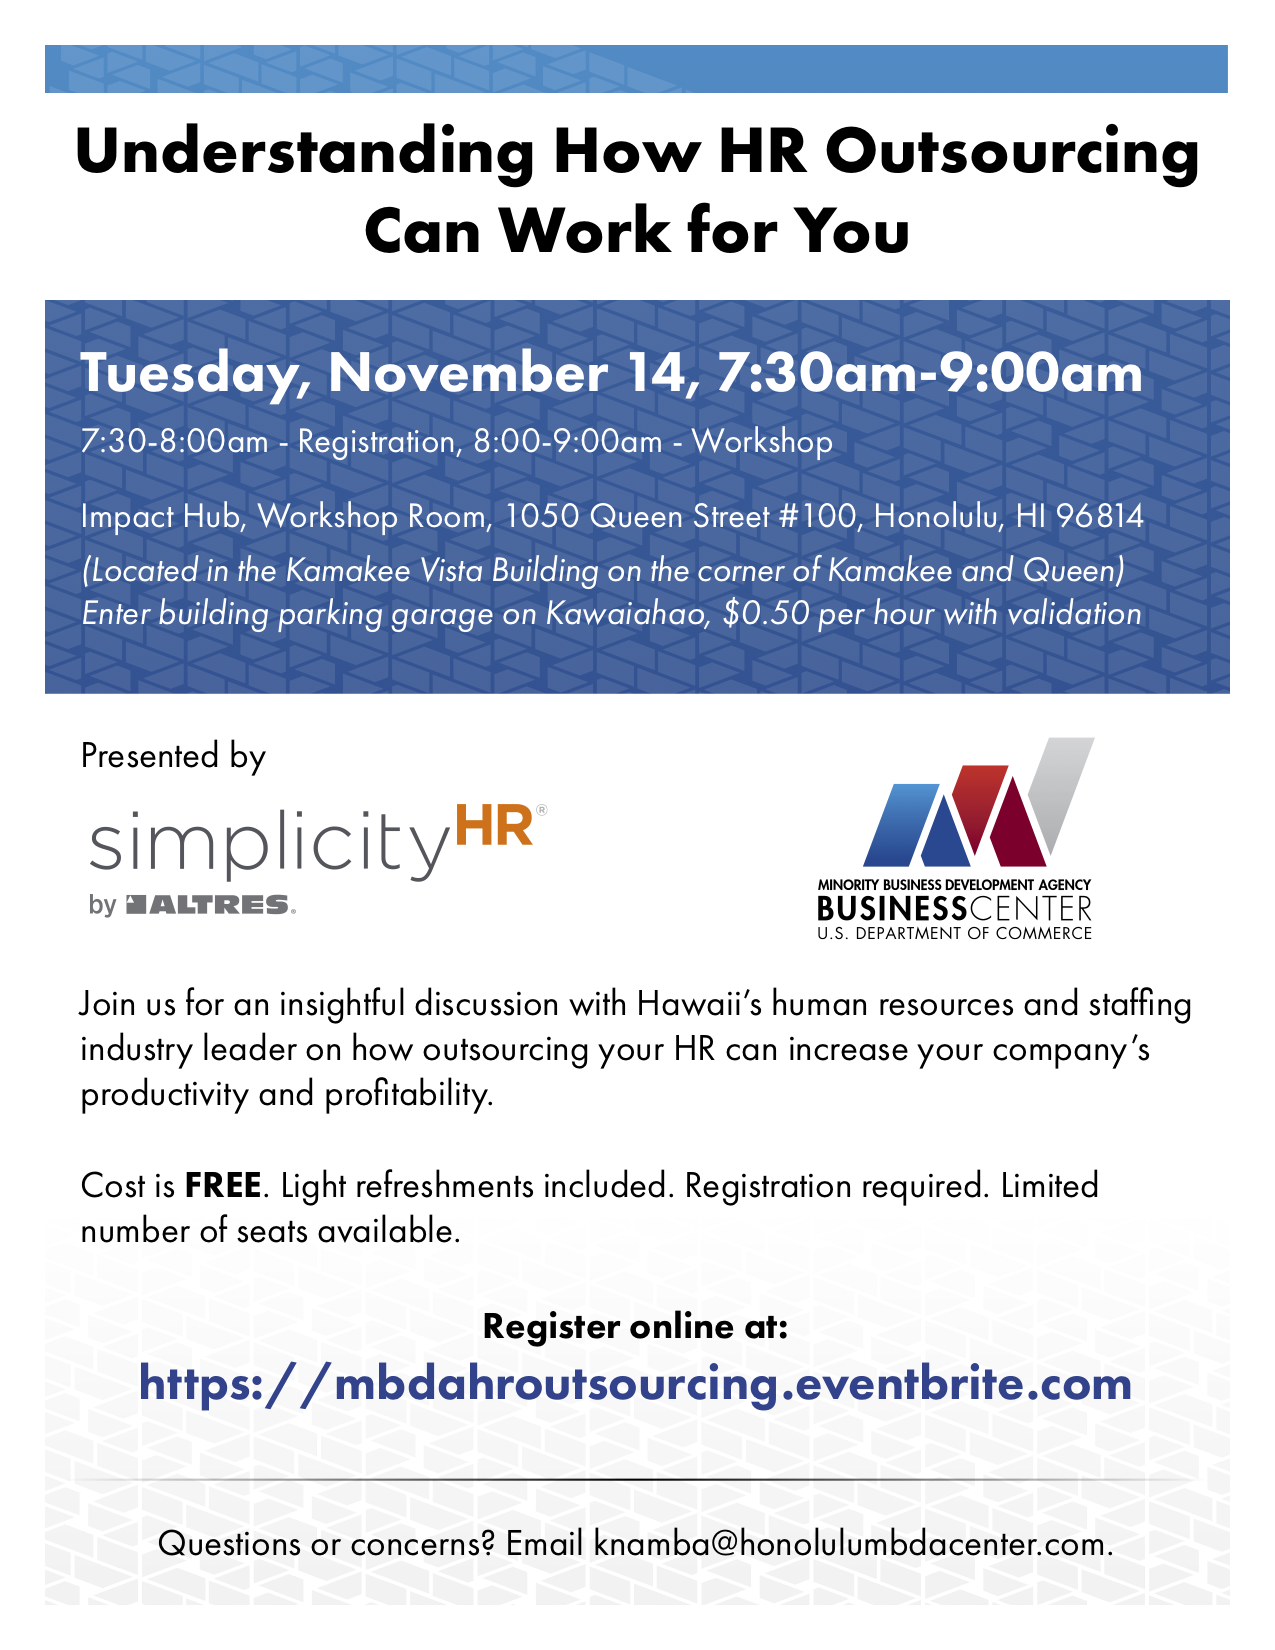 Understanding How HR Outsourcing Can Work for You.png